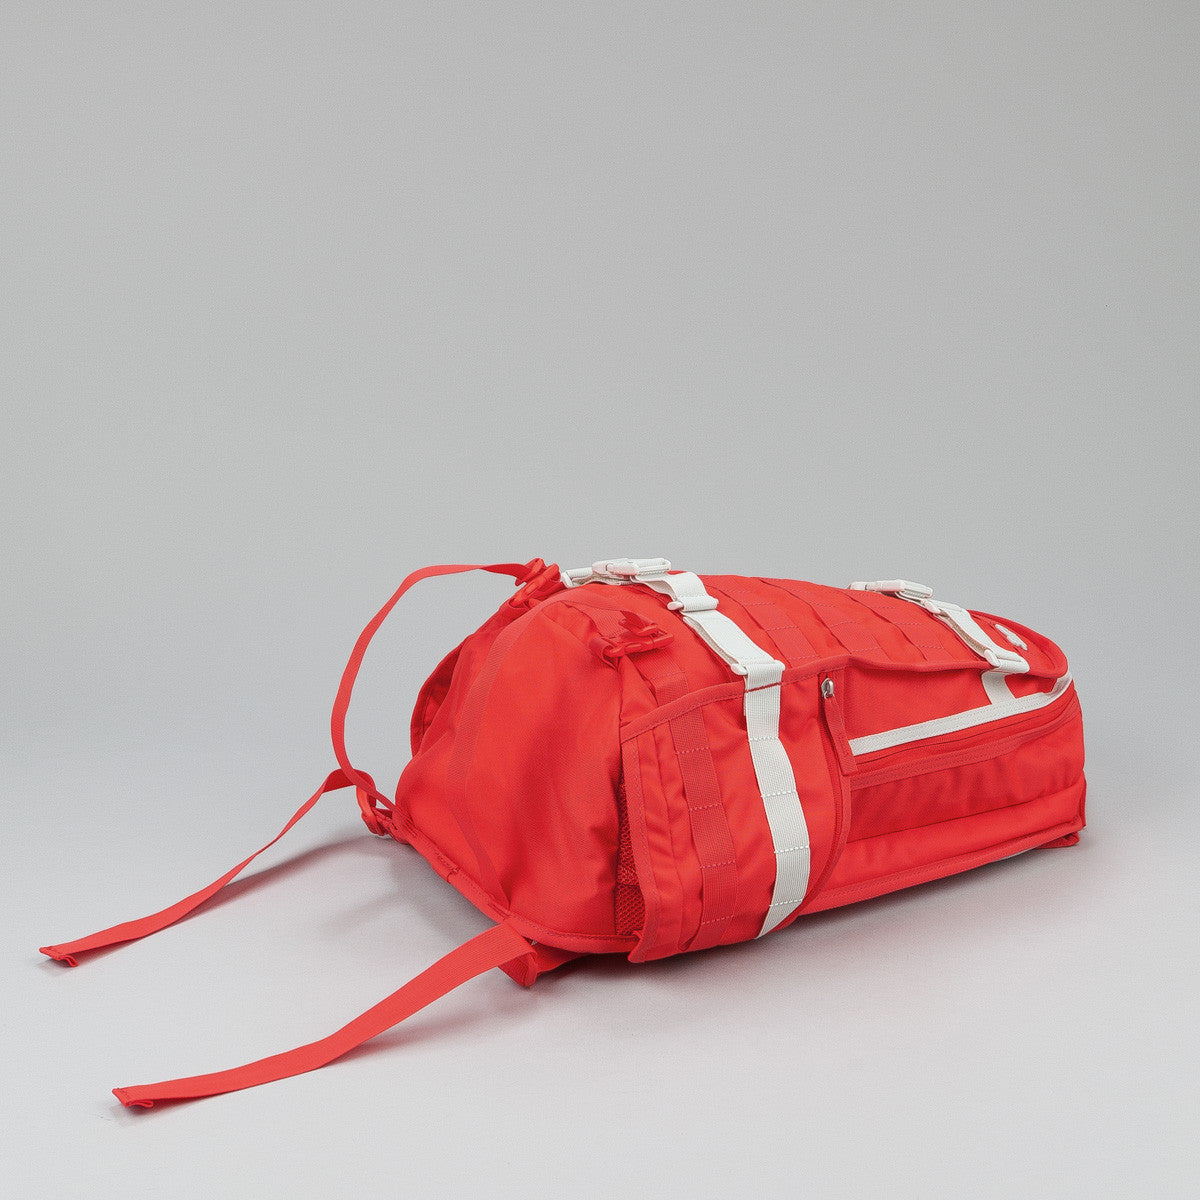 Nike SB RPM Backpack - Daring Red / Daring Red / Light Bone